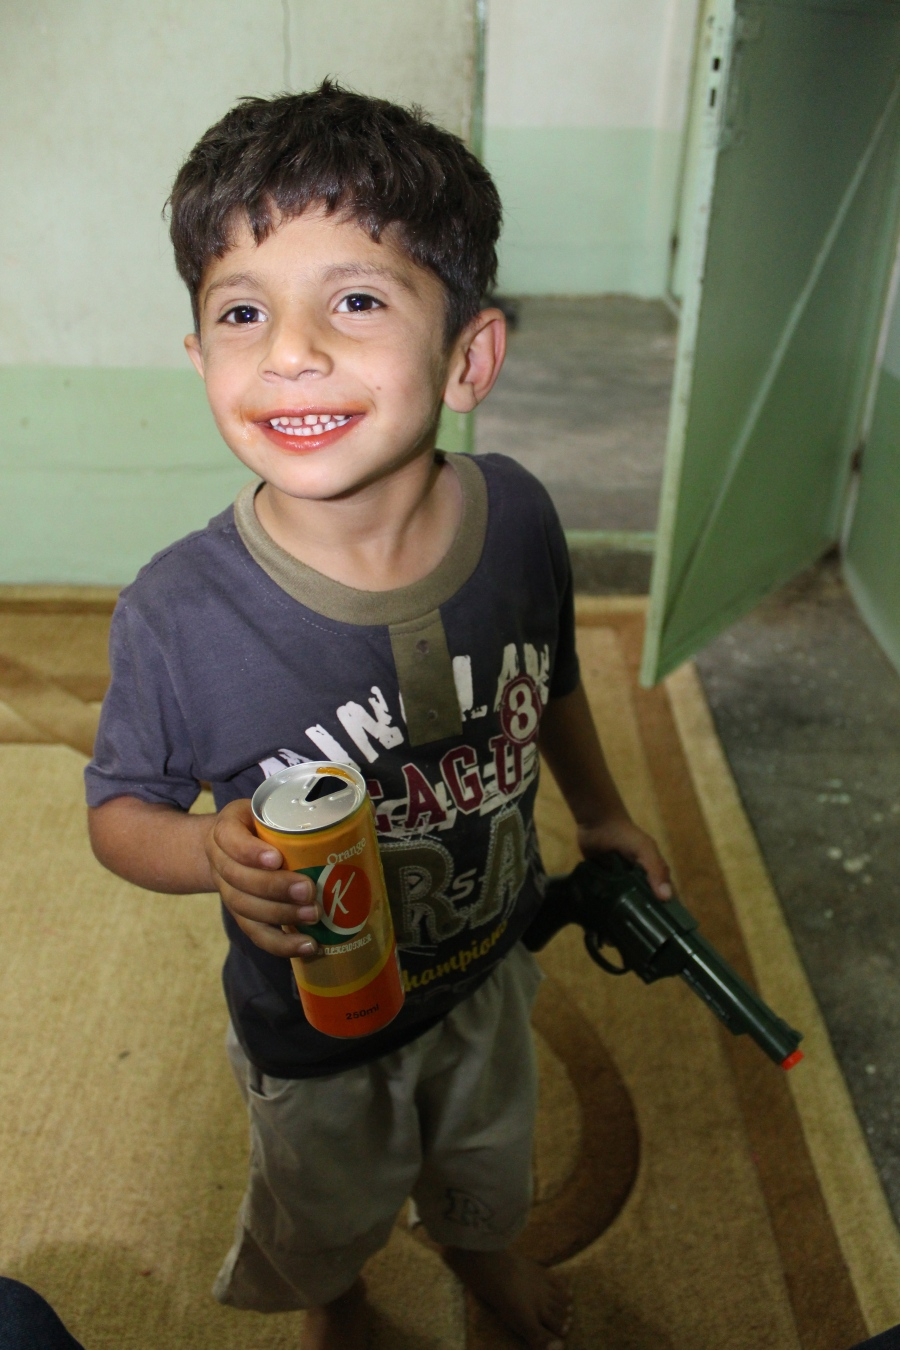 Oh, Hama is SUCH a Kurdish child. Mouth orange from a soda and holding a toy gun.